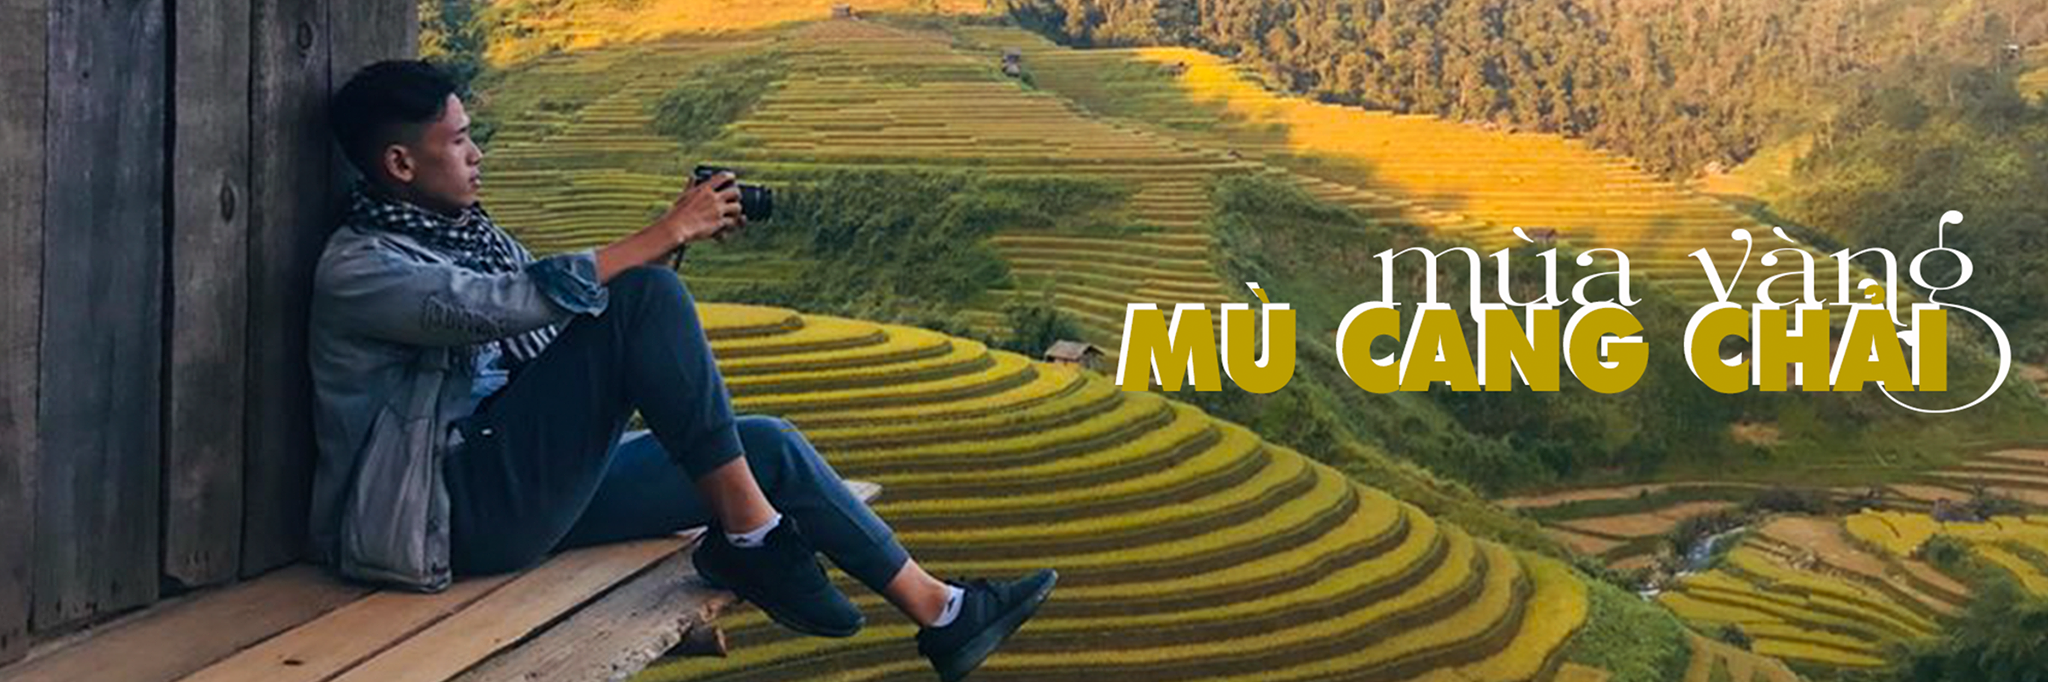 https://gody.vn/blog/thuanphatlee7402/post/review-chi-tiet-du-lich-mu-cang-chai-mua-lua-chin-7191